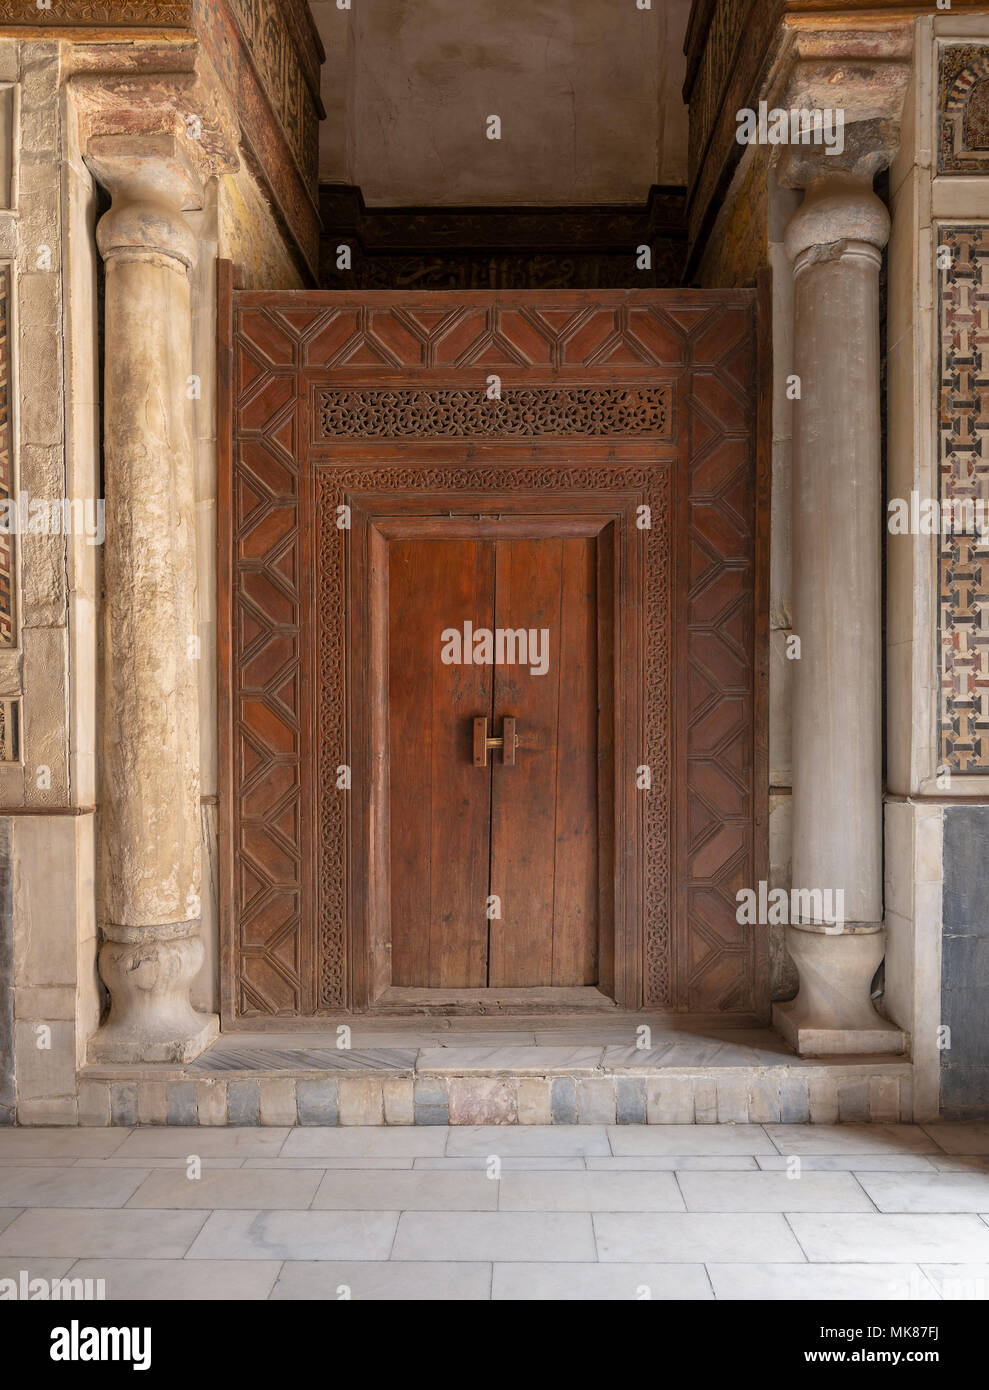 Old wooden door framed by wooden engraved panels decorated with geometric and floral patterns between two carved columns located at Sultan Qalawun Mau - Stock Image